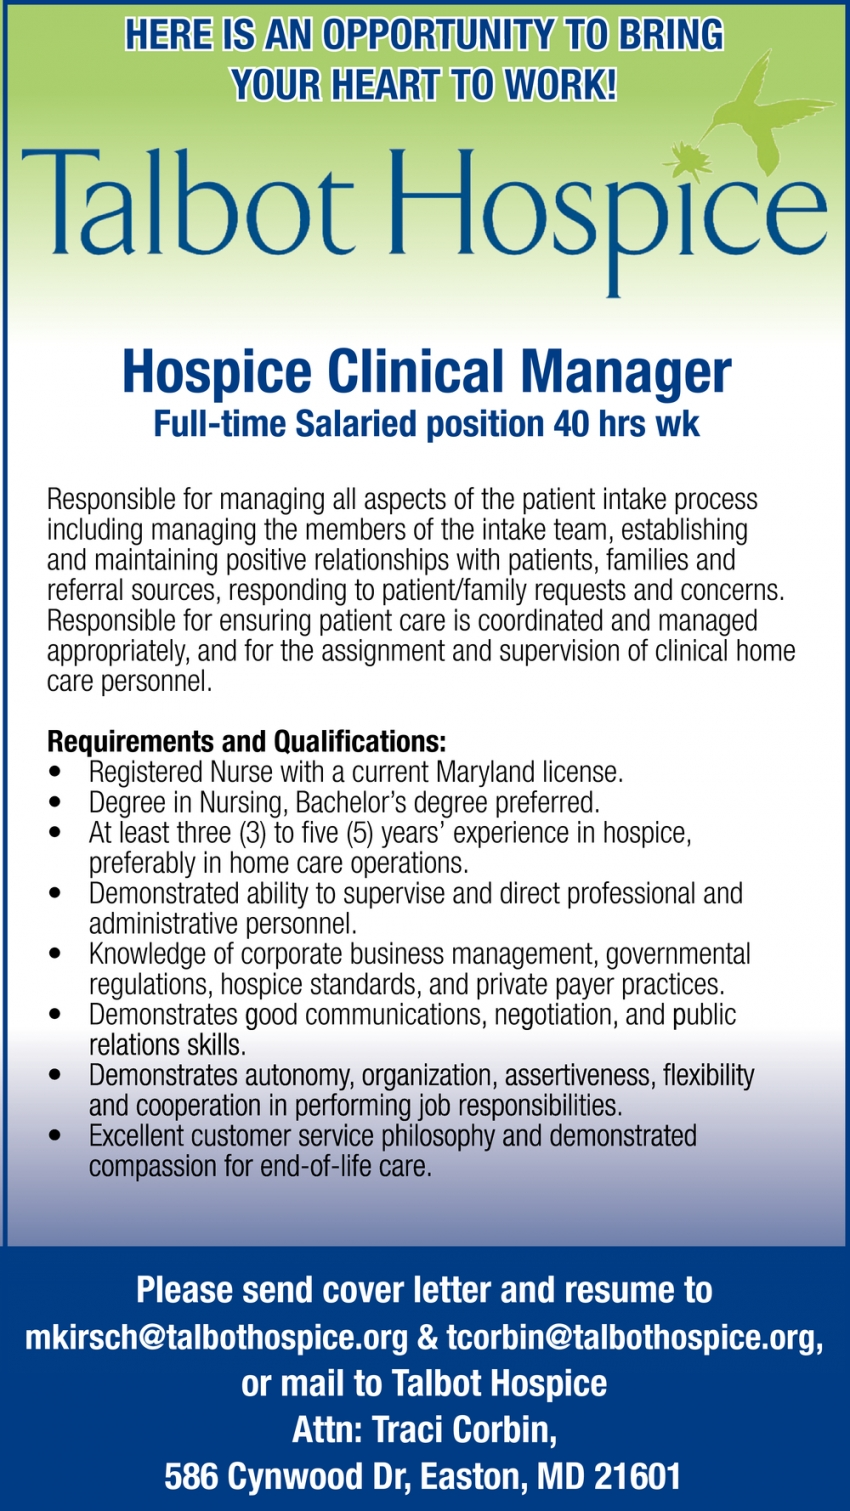 Hospice Clinical Manager Wanted